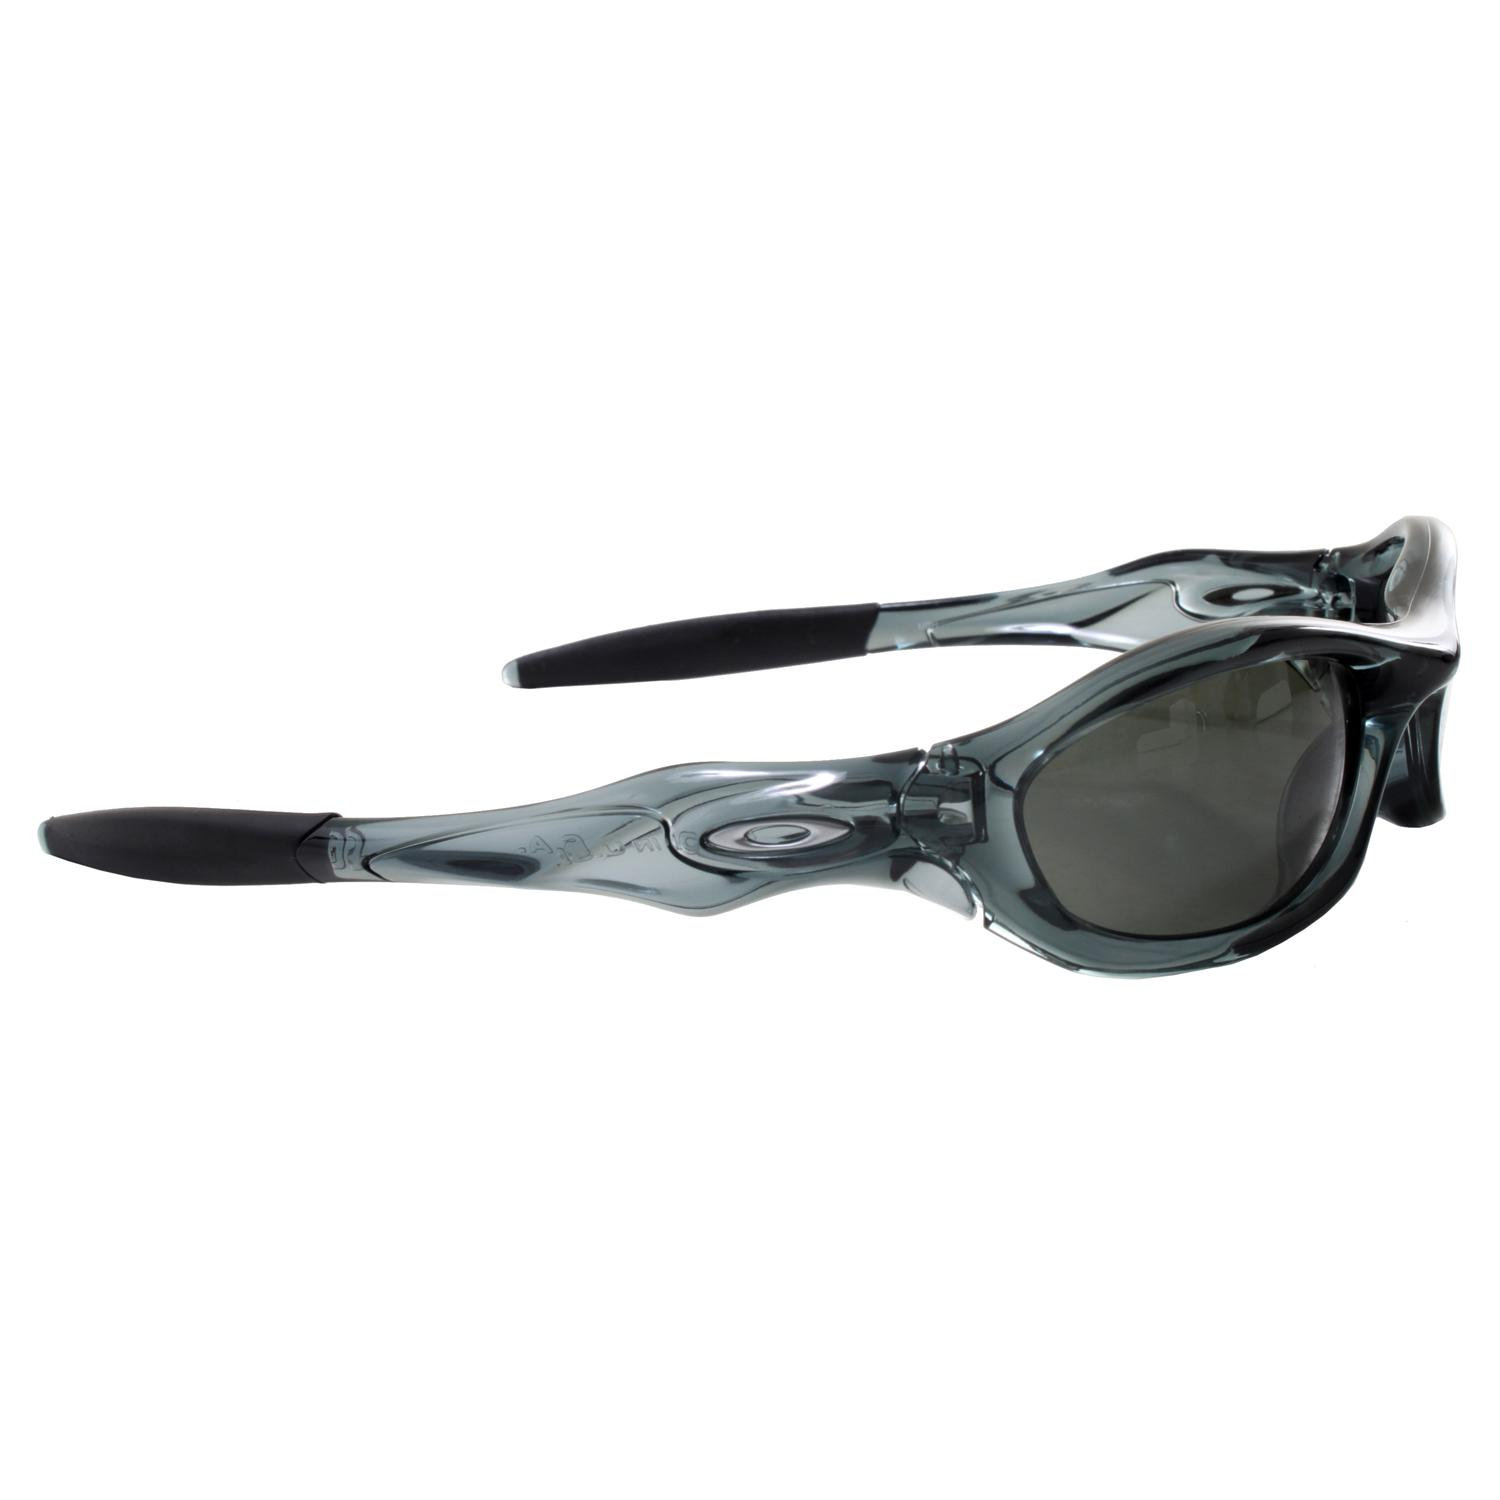 8i0jtsixtnravvw Latest Oakley Outlet